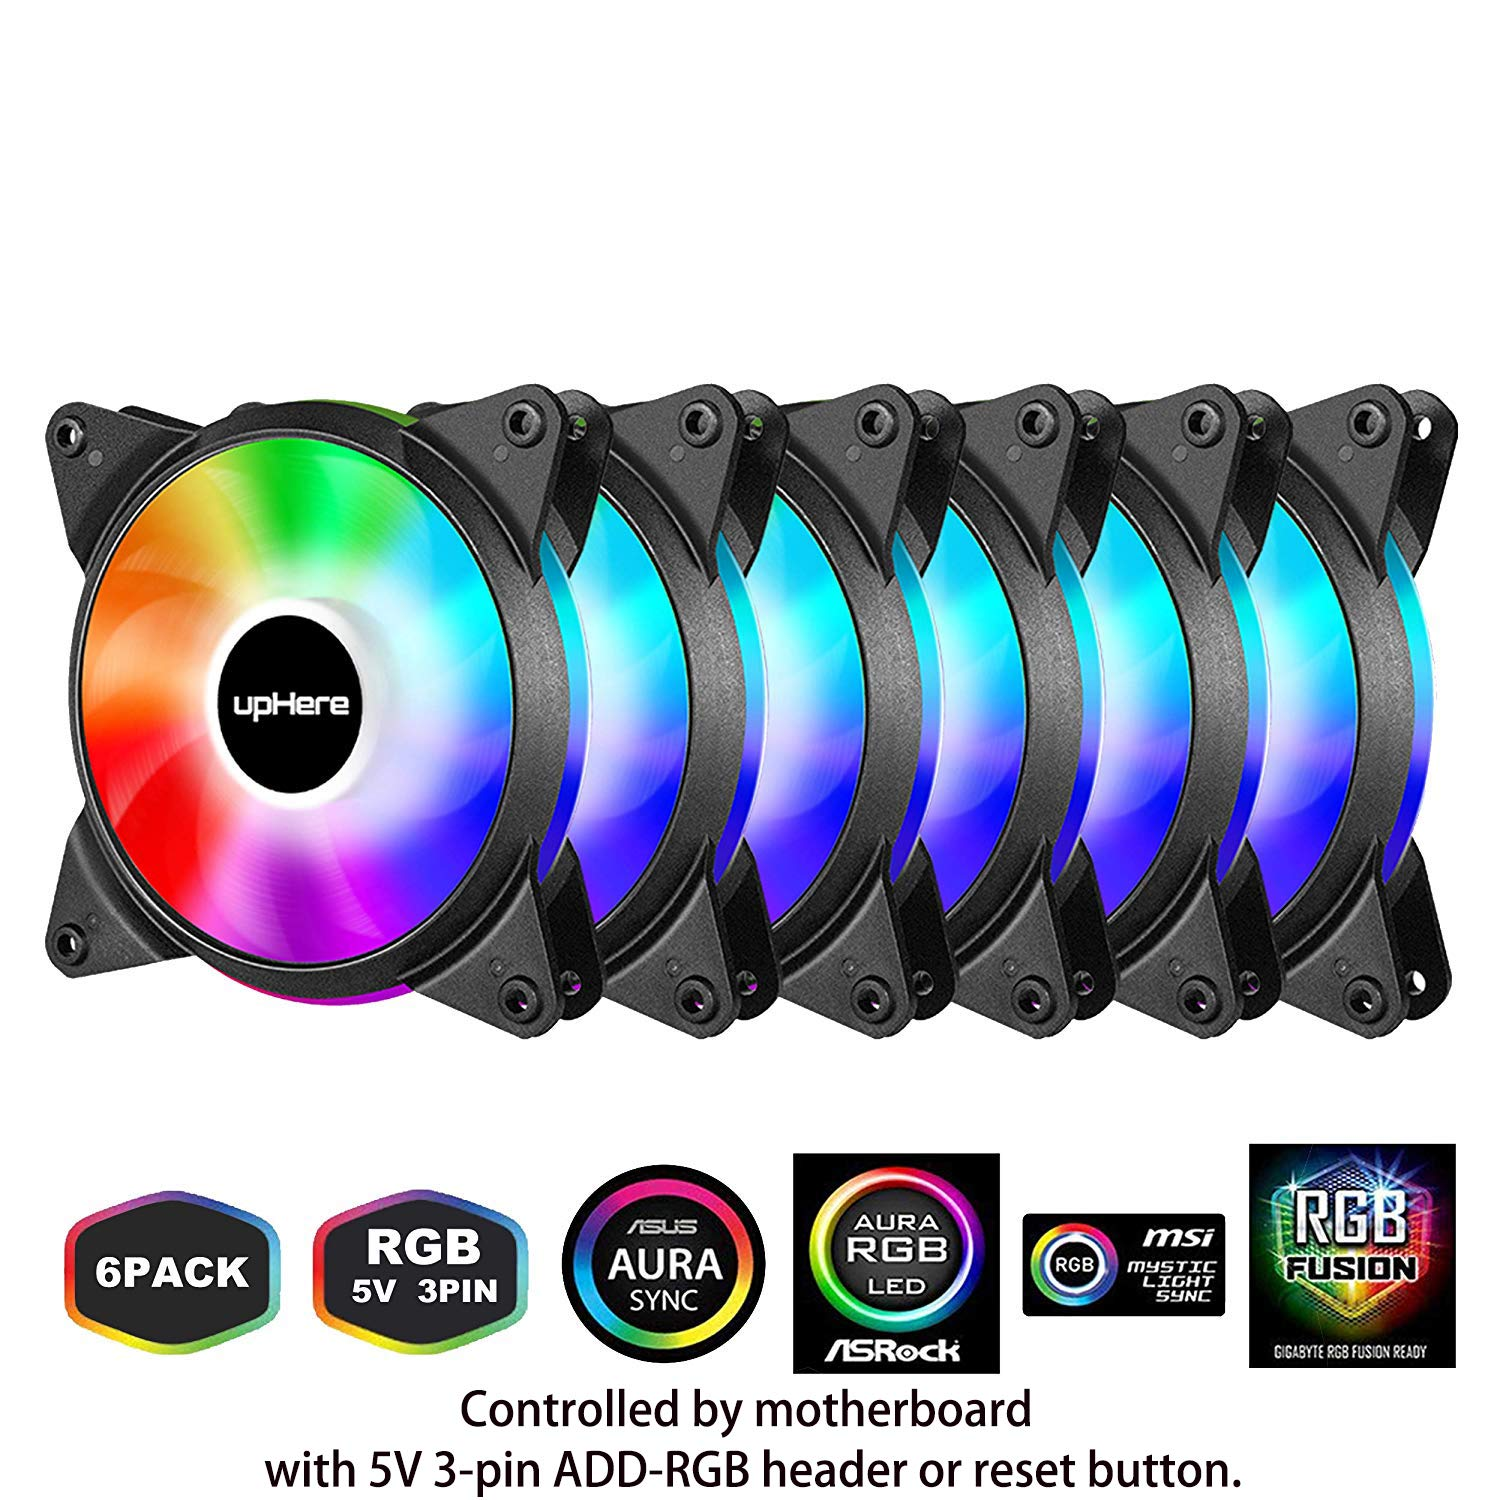 upHere 5V 6-Pack 120mm Silent Intelligent Control 5V Addressable RGB Fan Motherboard Sync, Adjustable Colorful Fans with Controller T3SYC3-6 by upHere